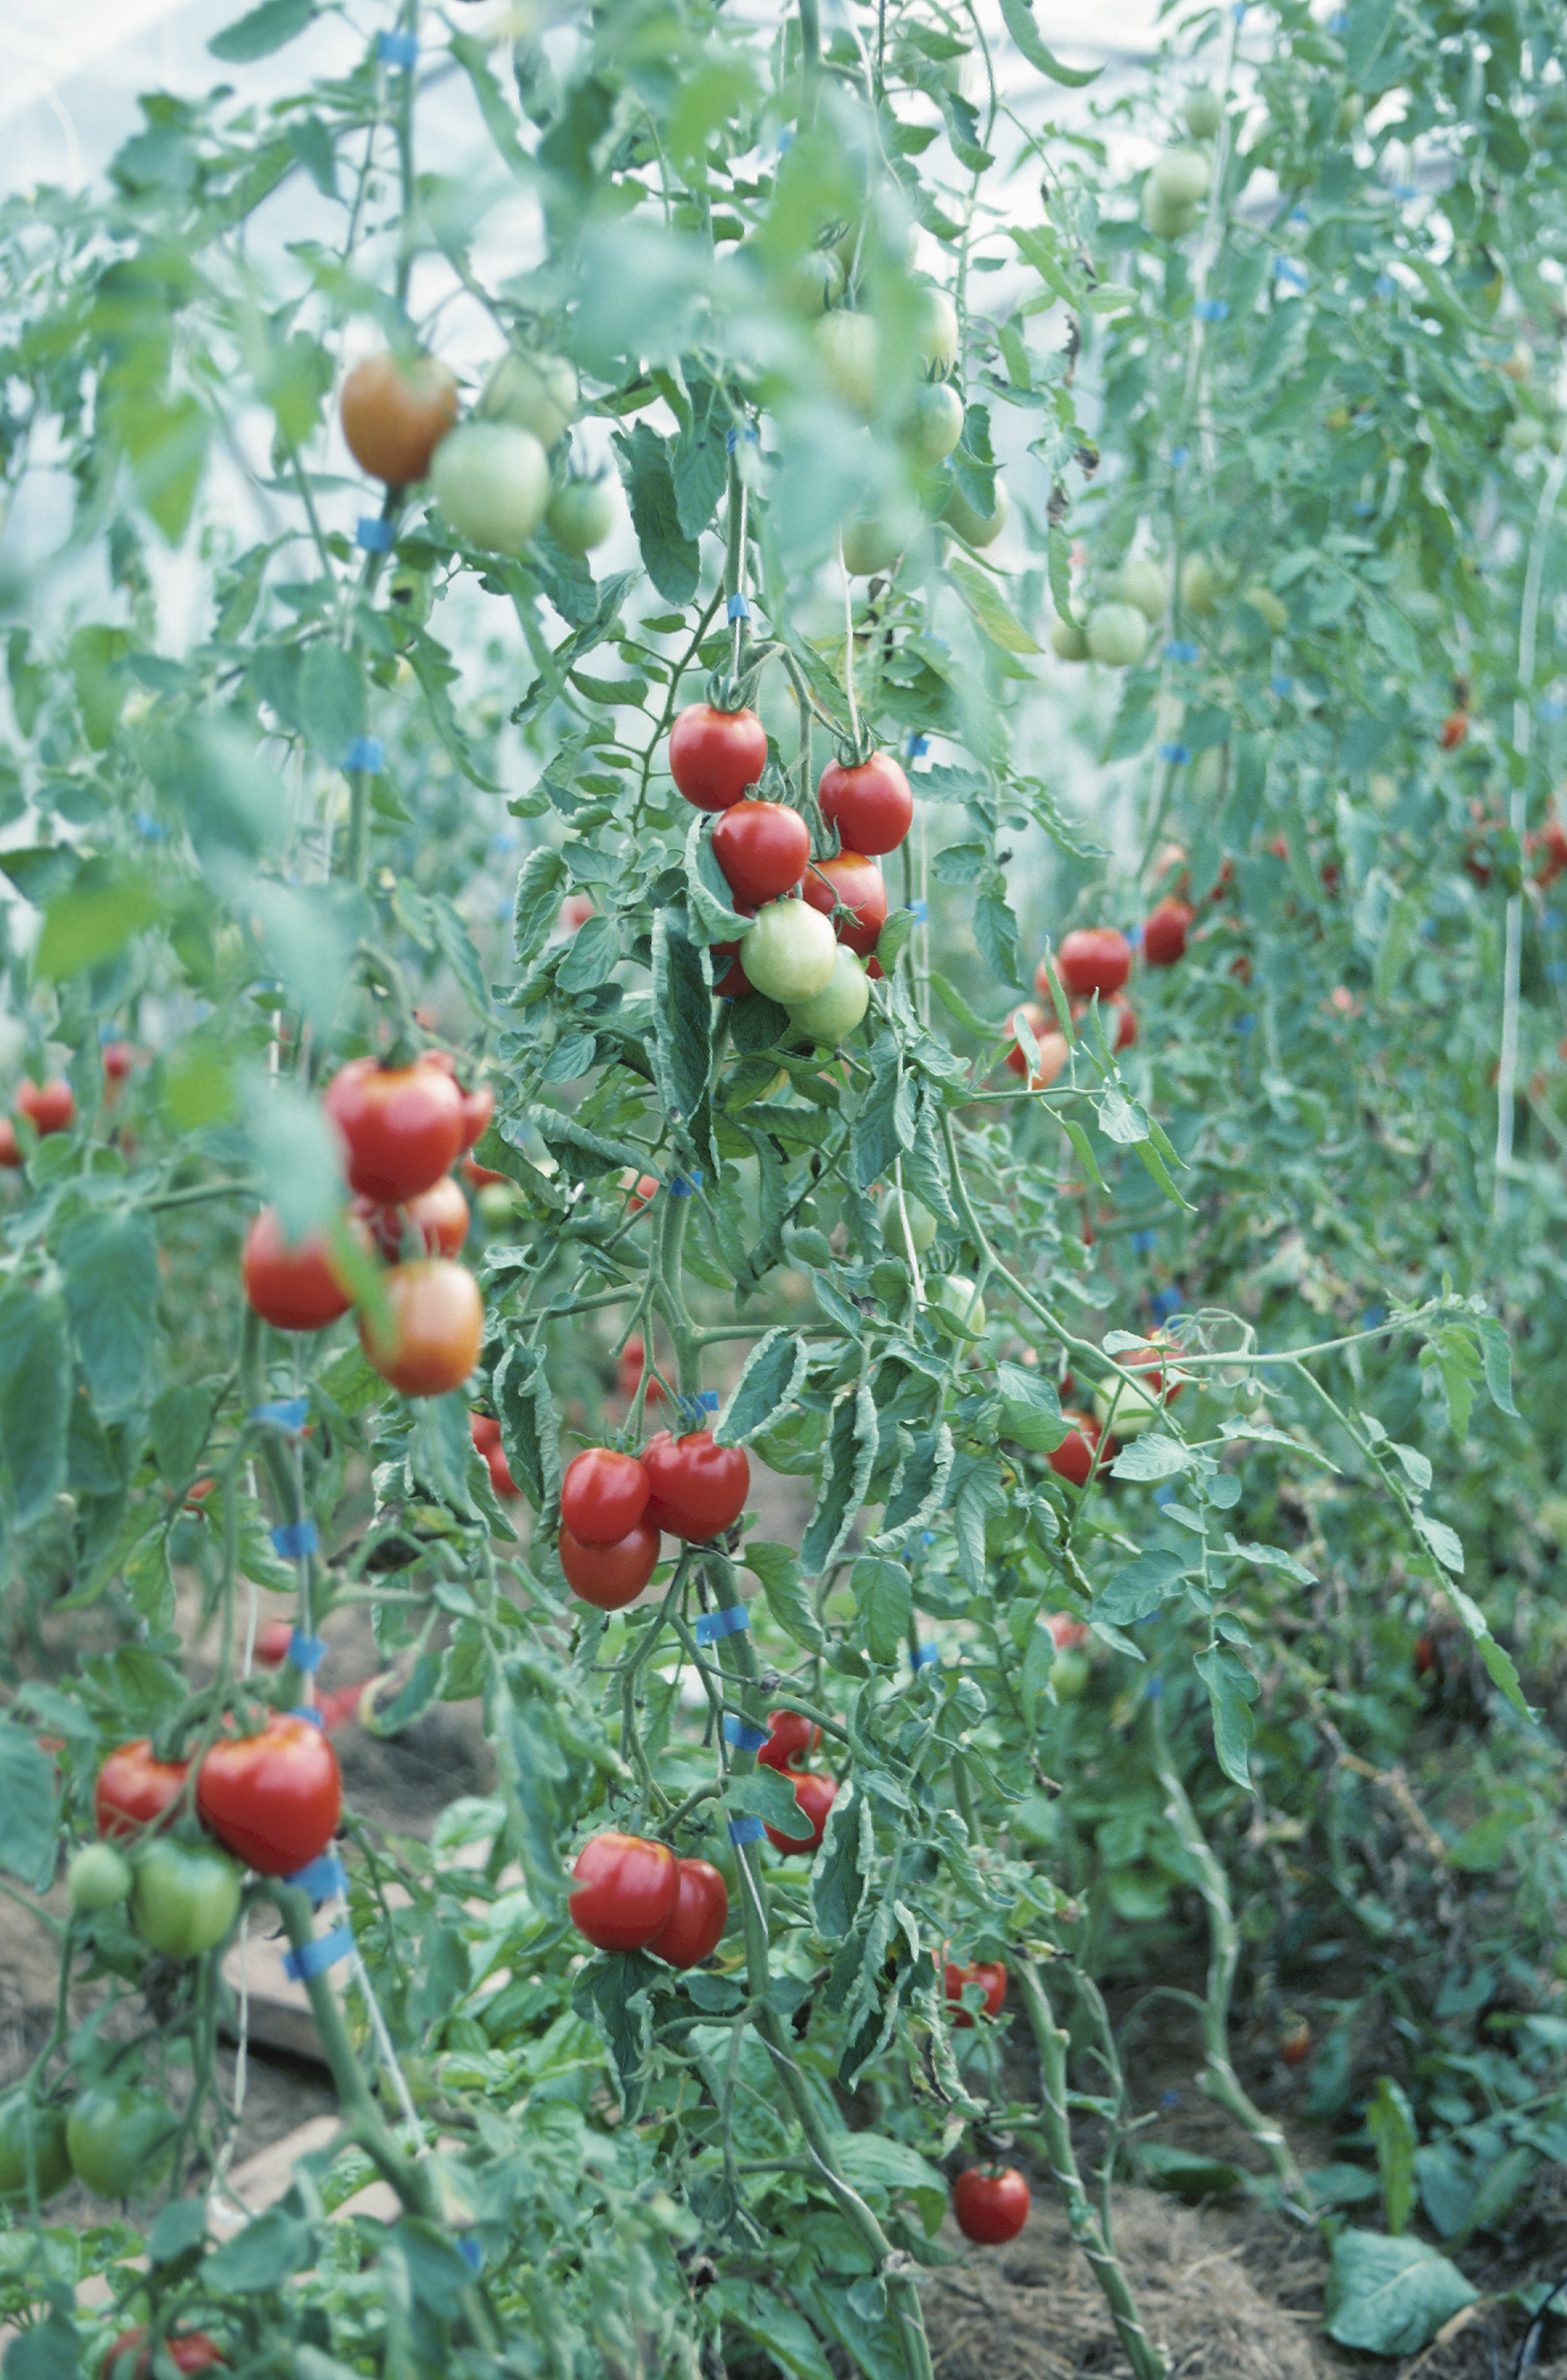 Curling Leaves & Tomato Plant Diseases   Home Guides   SF Gate